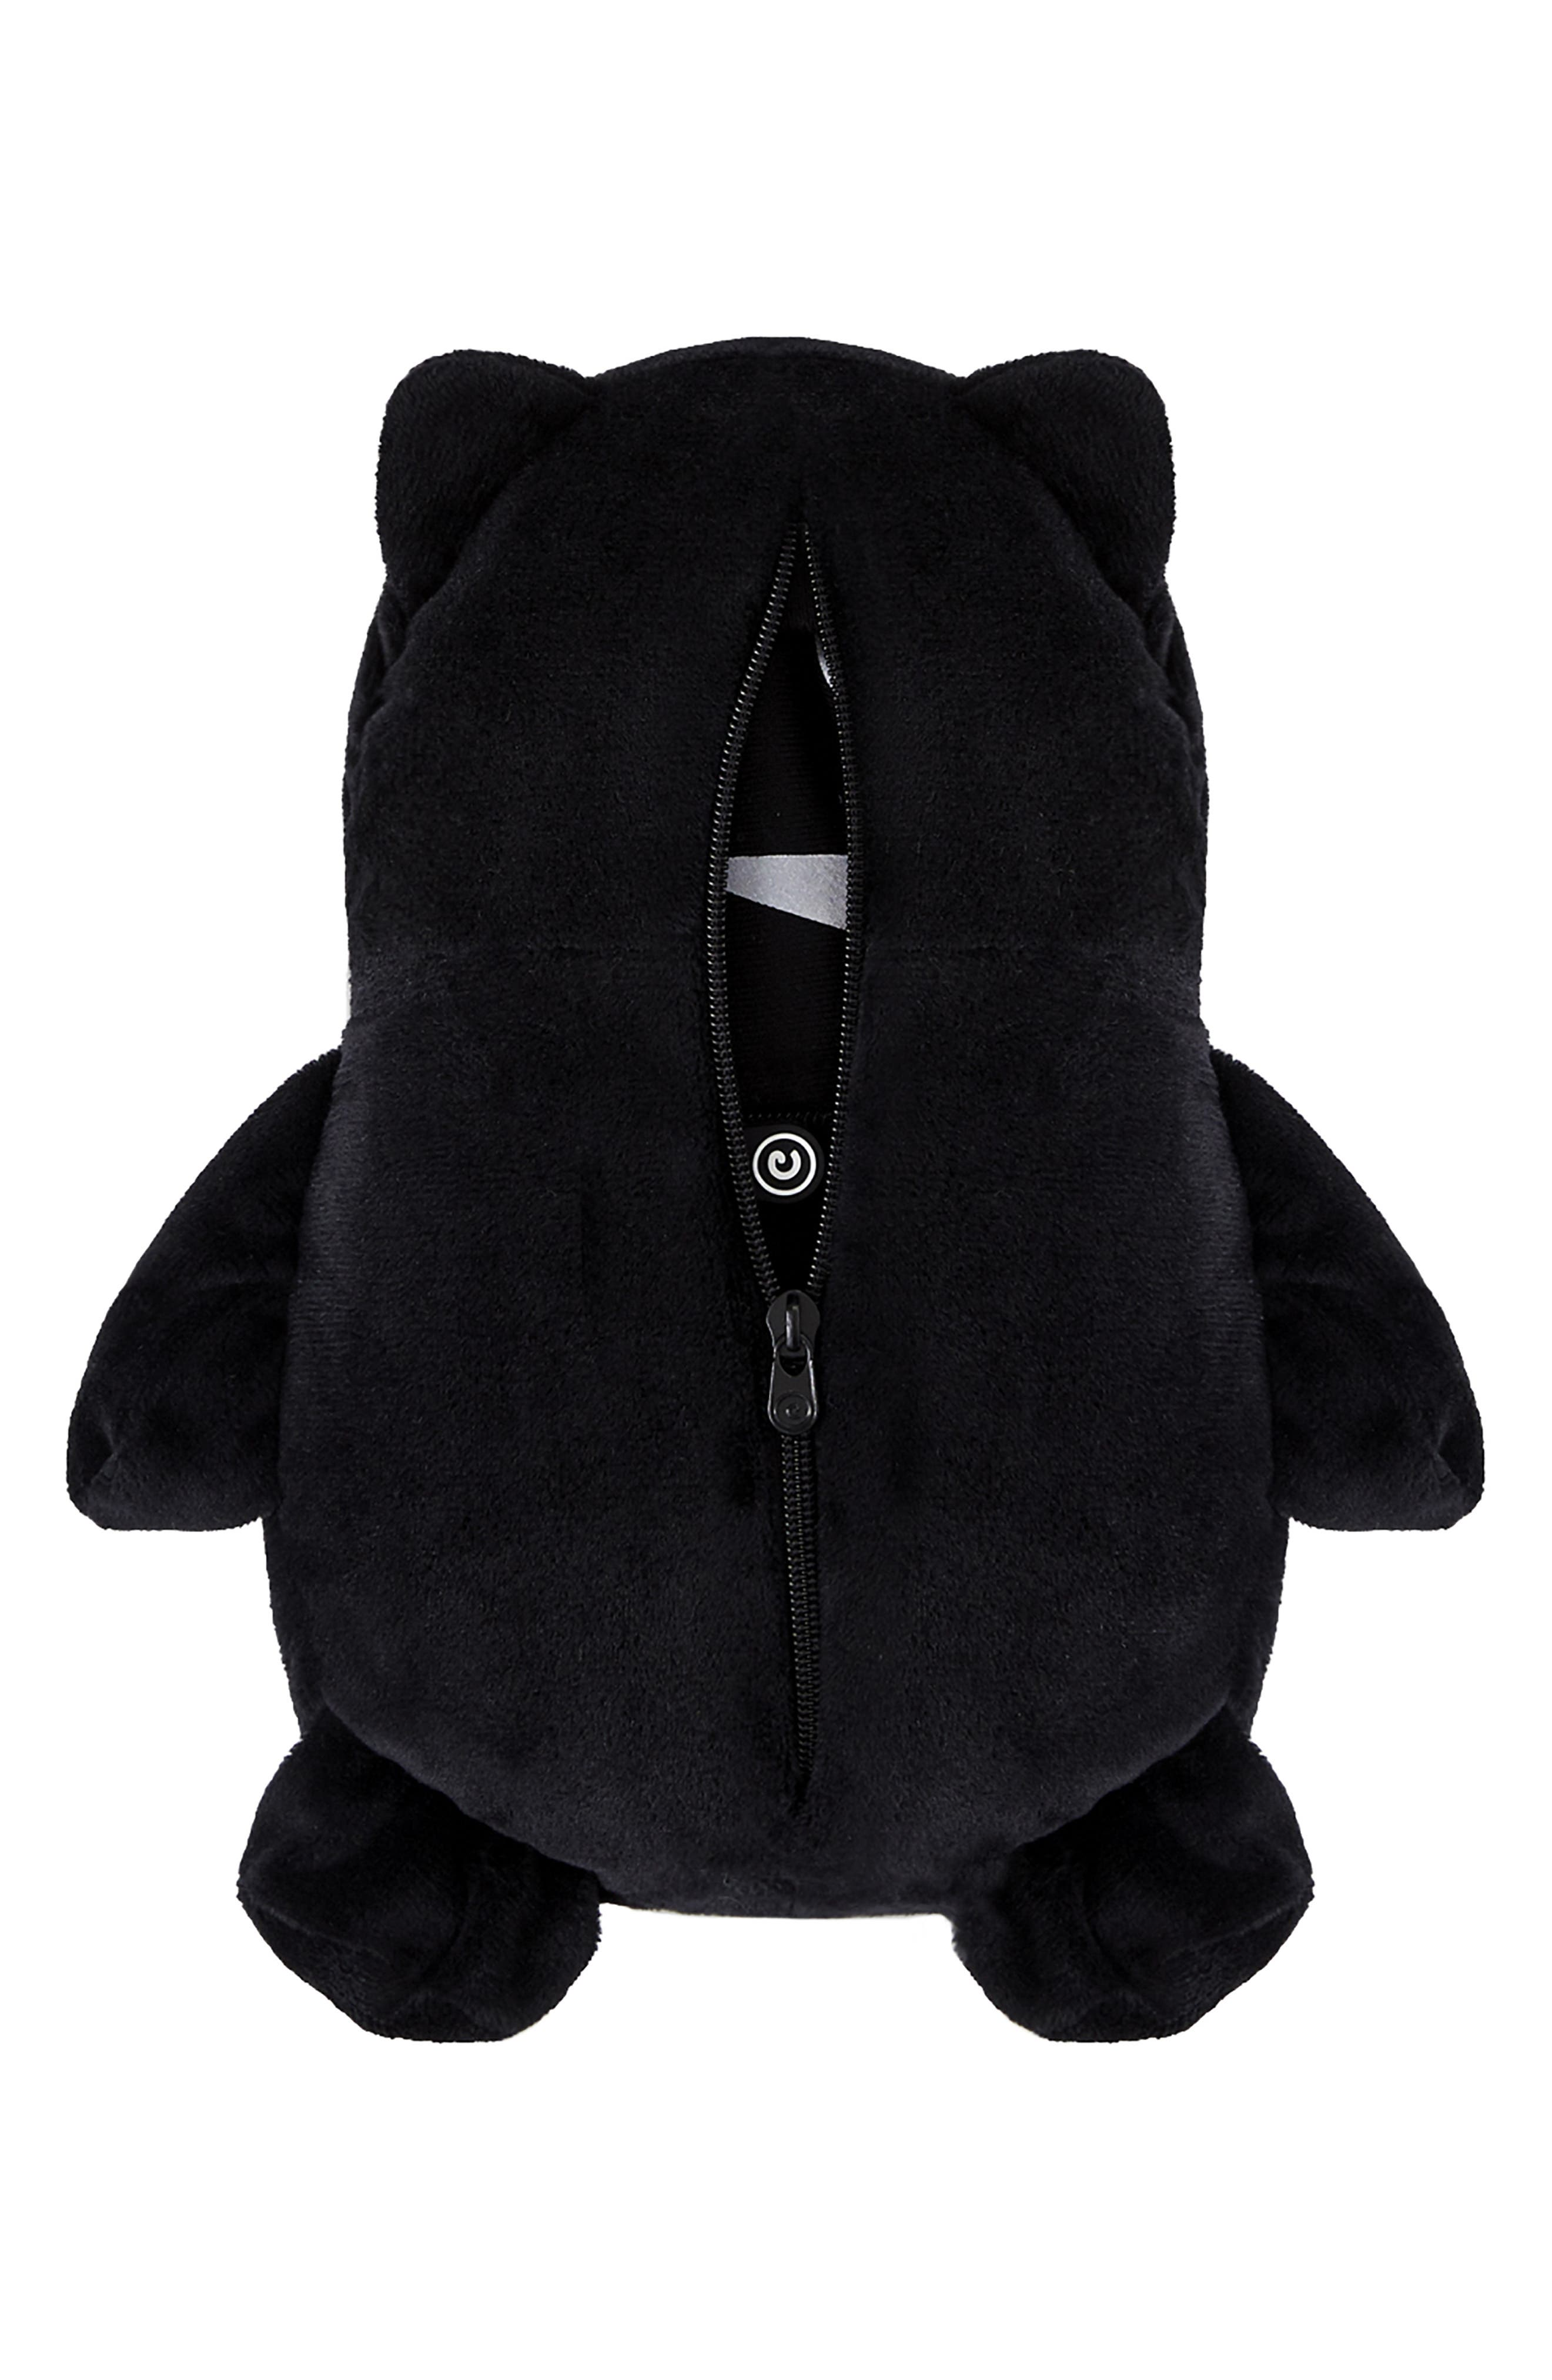 Marvel<sup>®</sup> 2018 Black Panther<sup>®</sup> 2-in-1 Stuffed Animal Hoodie,                             Alternate thumbnail 4, color,                             BLACK